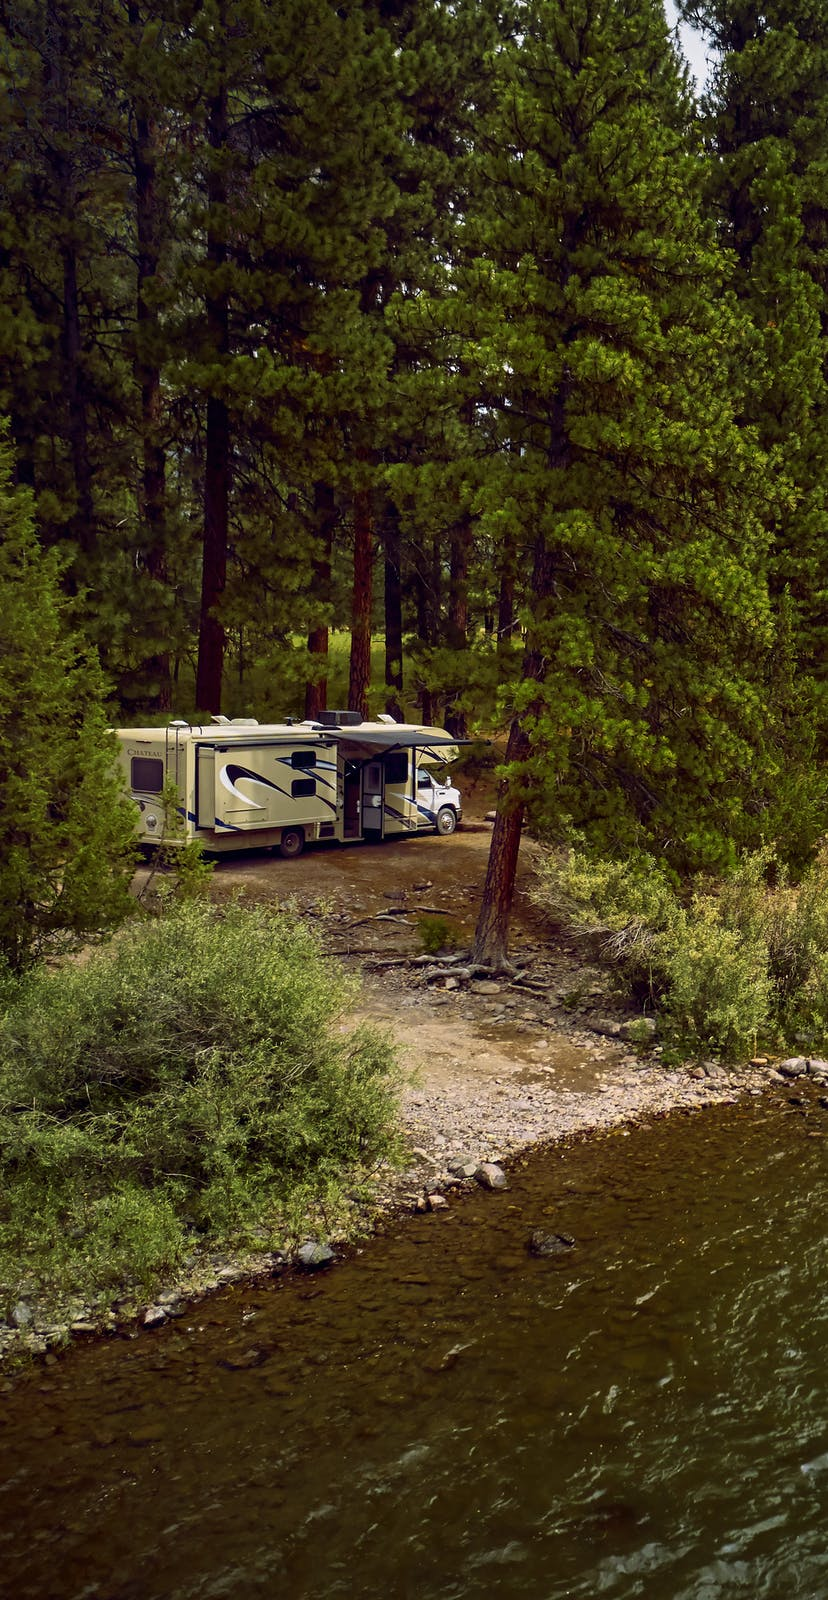 An RV parked next to a river.